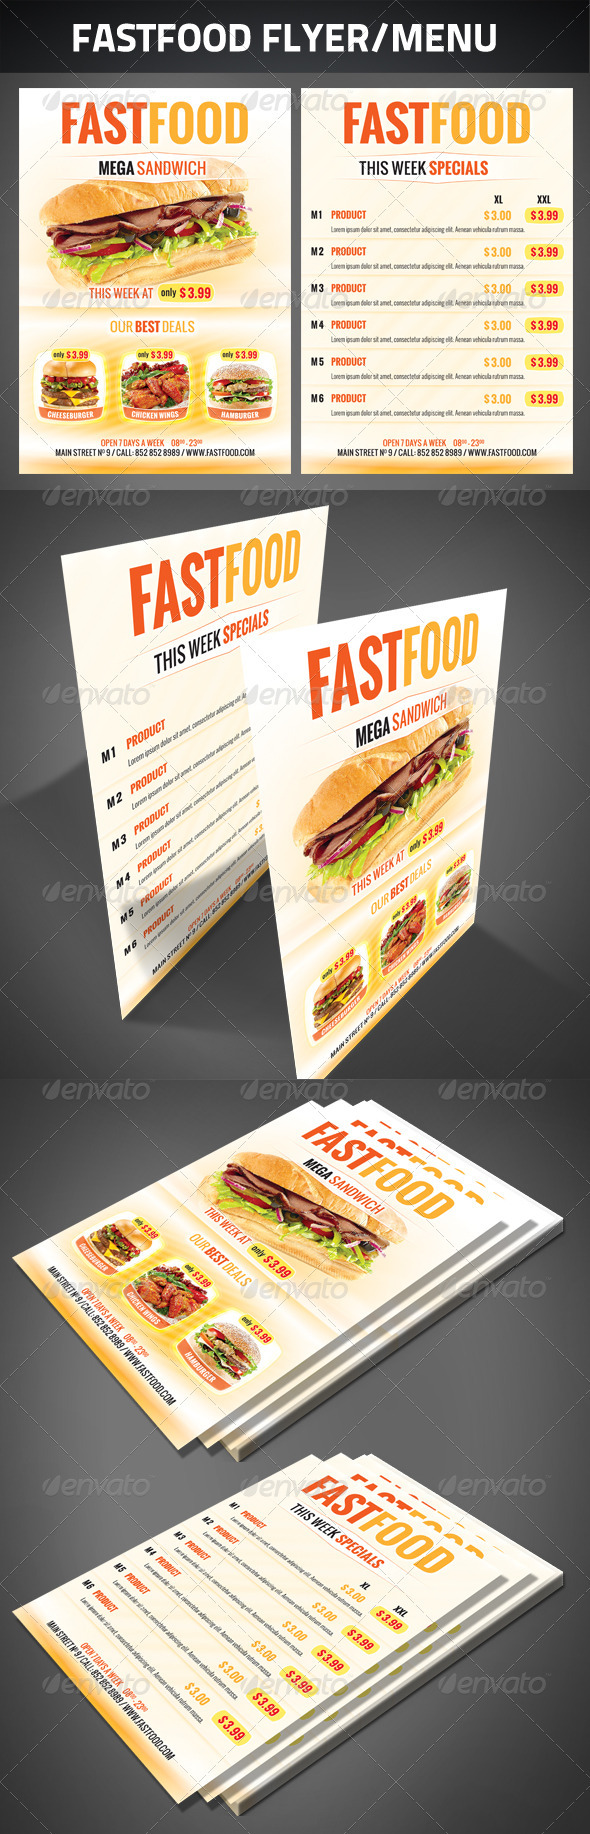 FastFood Flyer